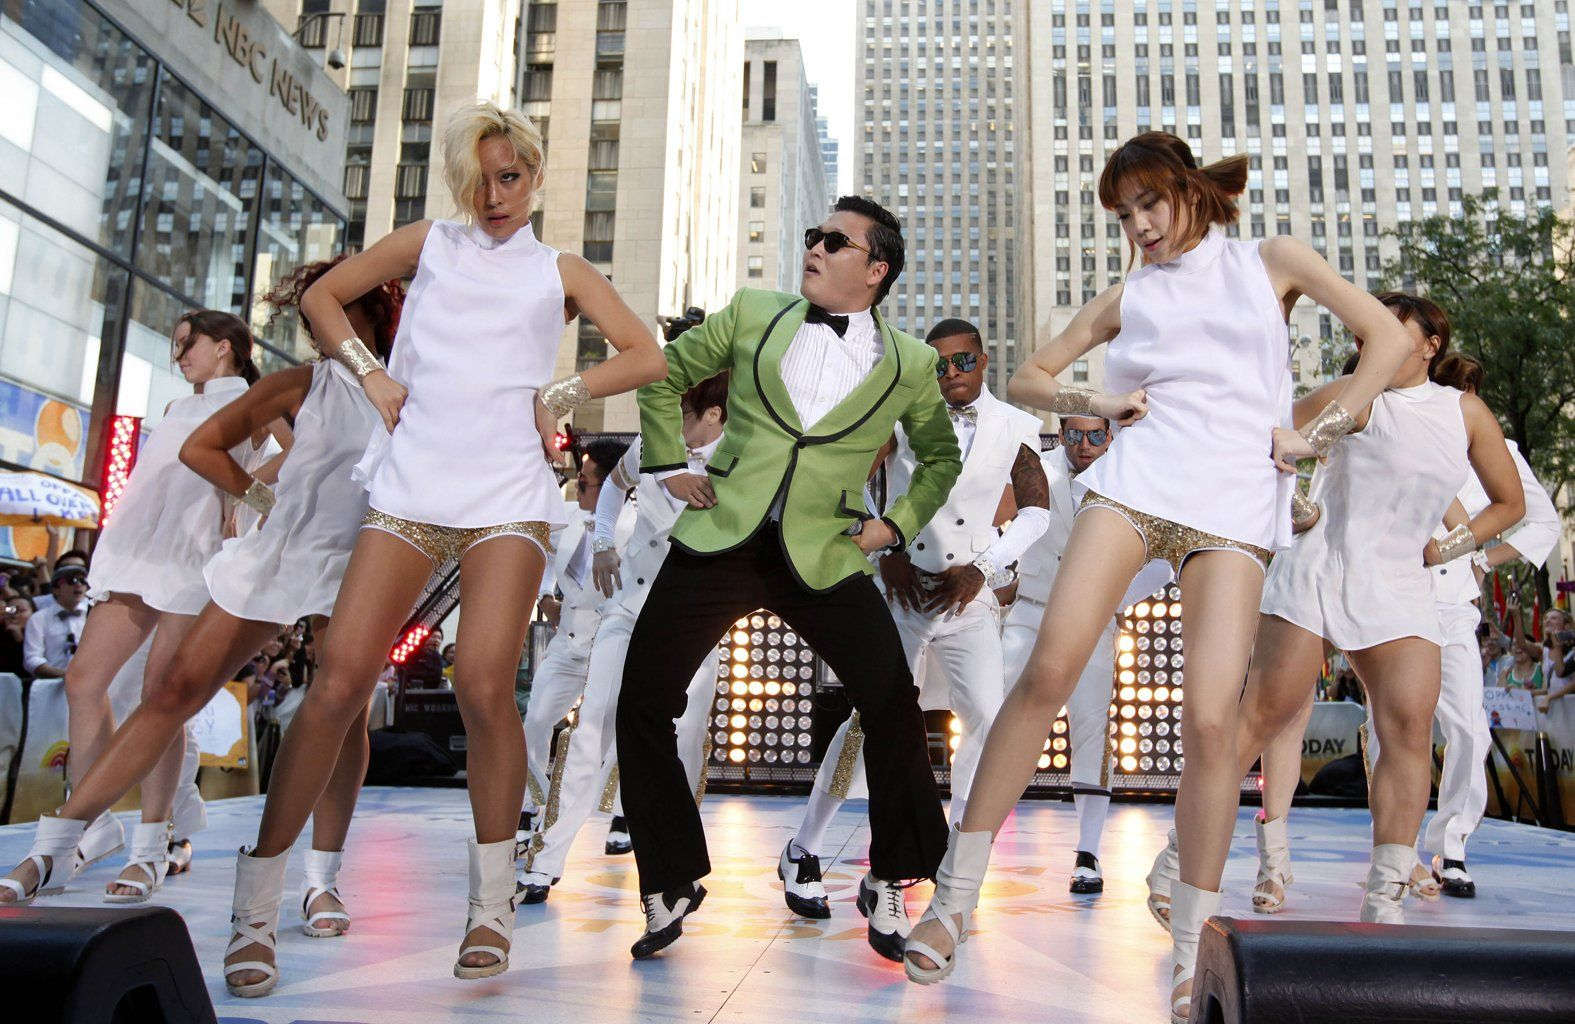 PSY Talks About His Plans Now That The Gangnam Style